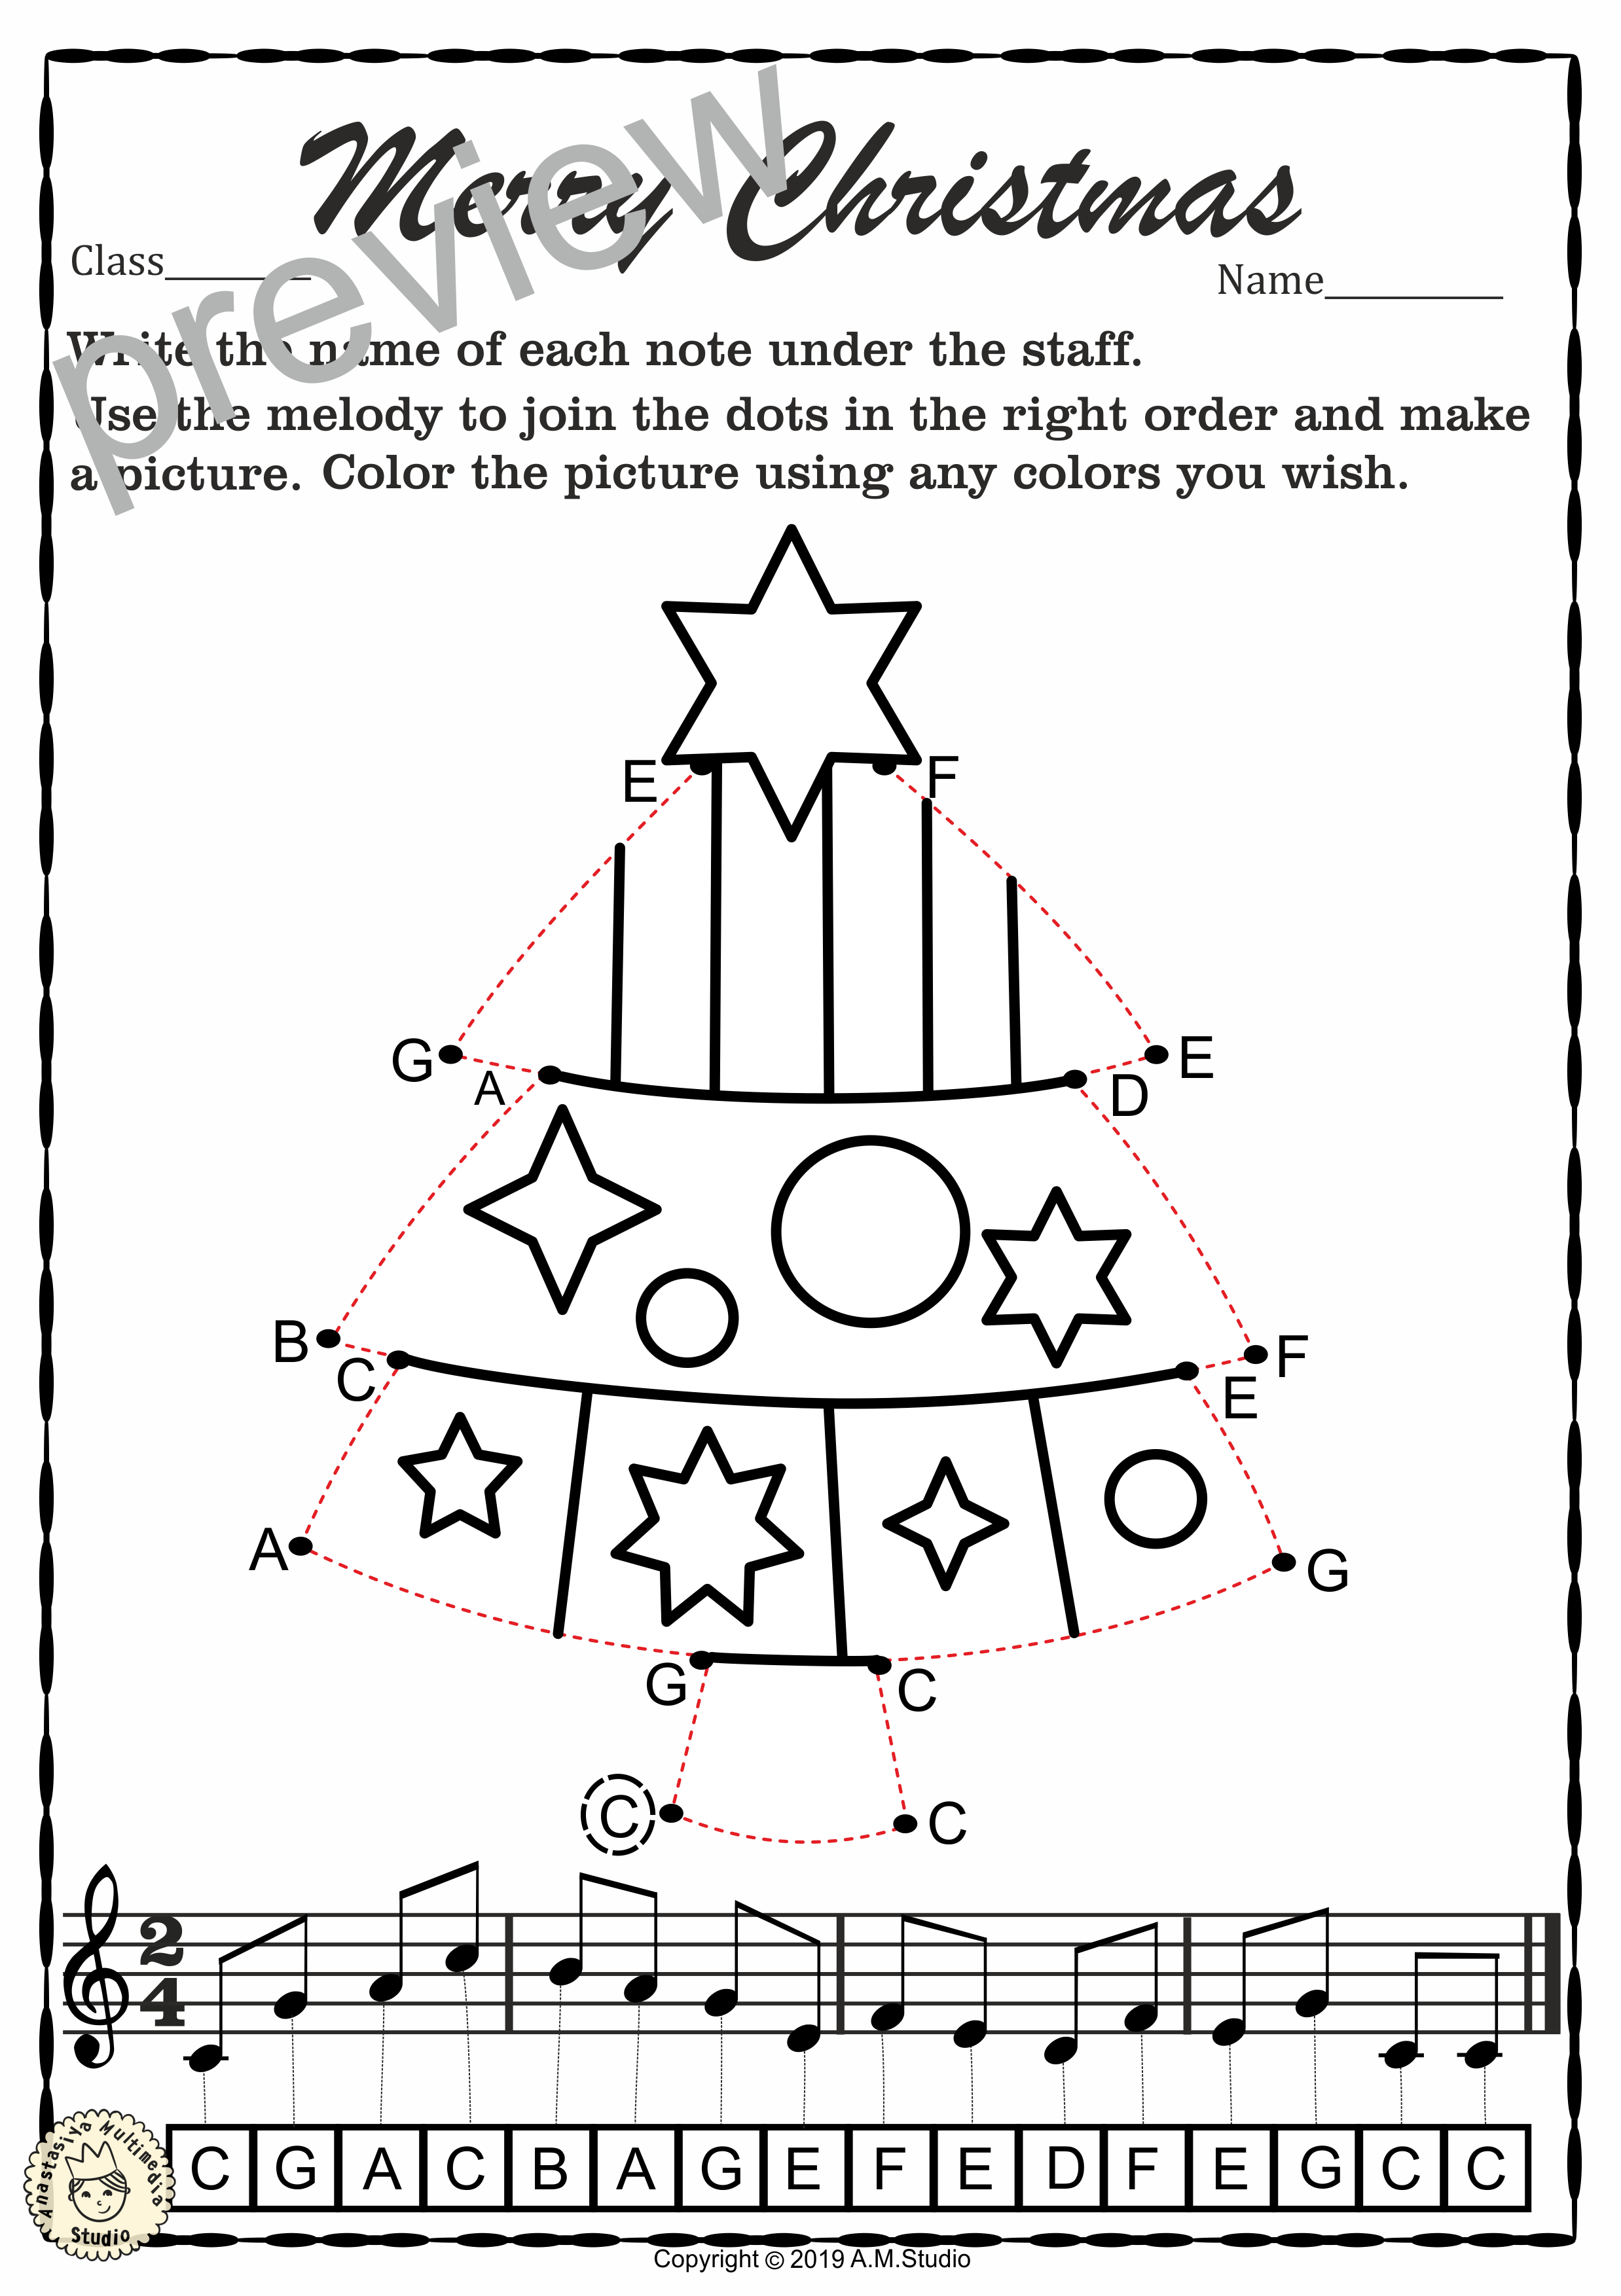 These Simple Christmas Themed Note-Reading Worksheets Can Be